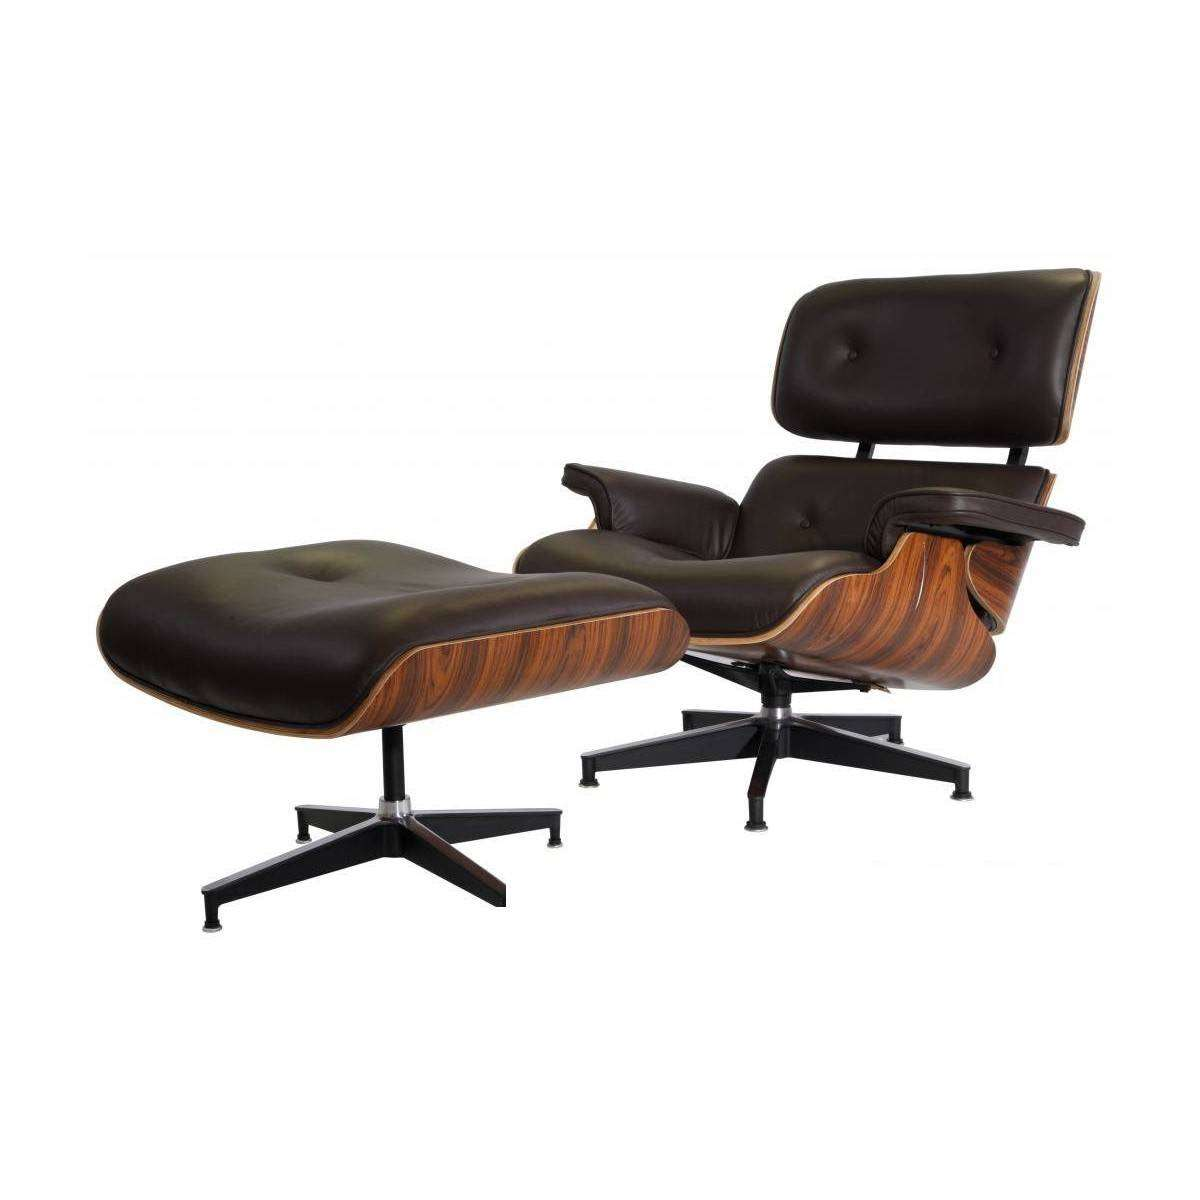 Remarkable Eames Lounge Chair Ottoman Replica Modterior Usa Dailytribune Chair Design For Home Dailytribuneorg